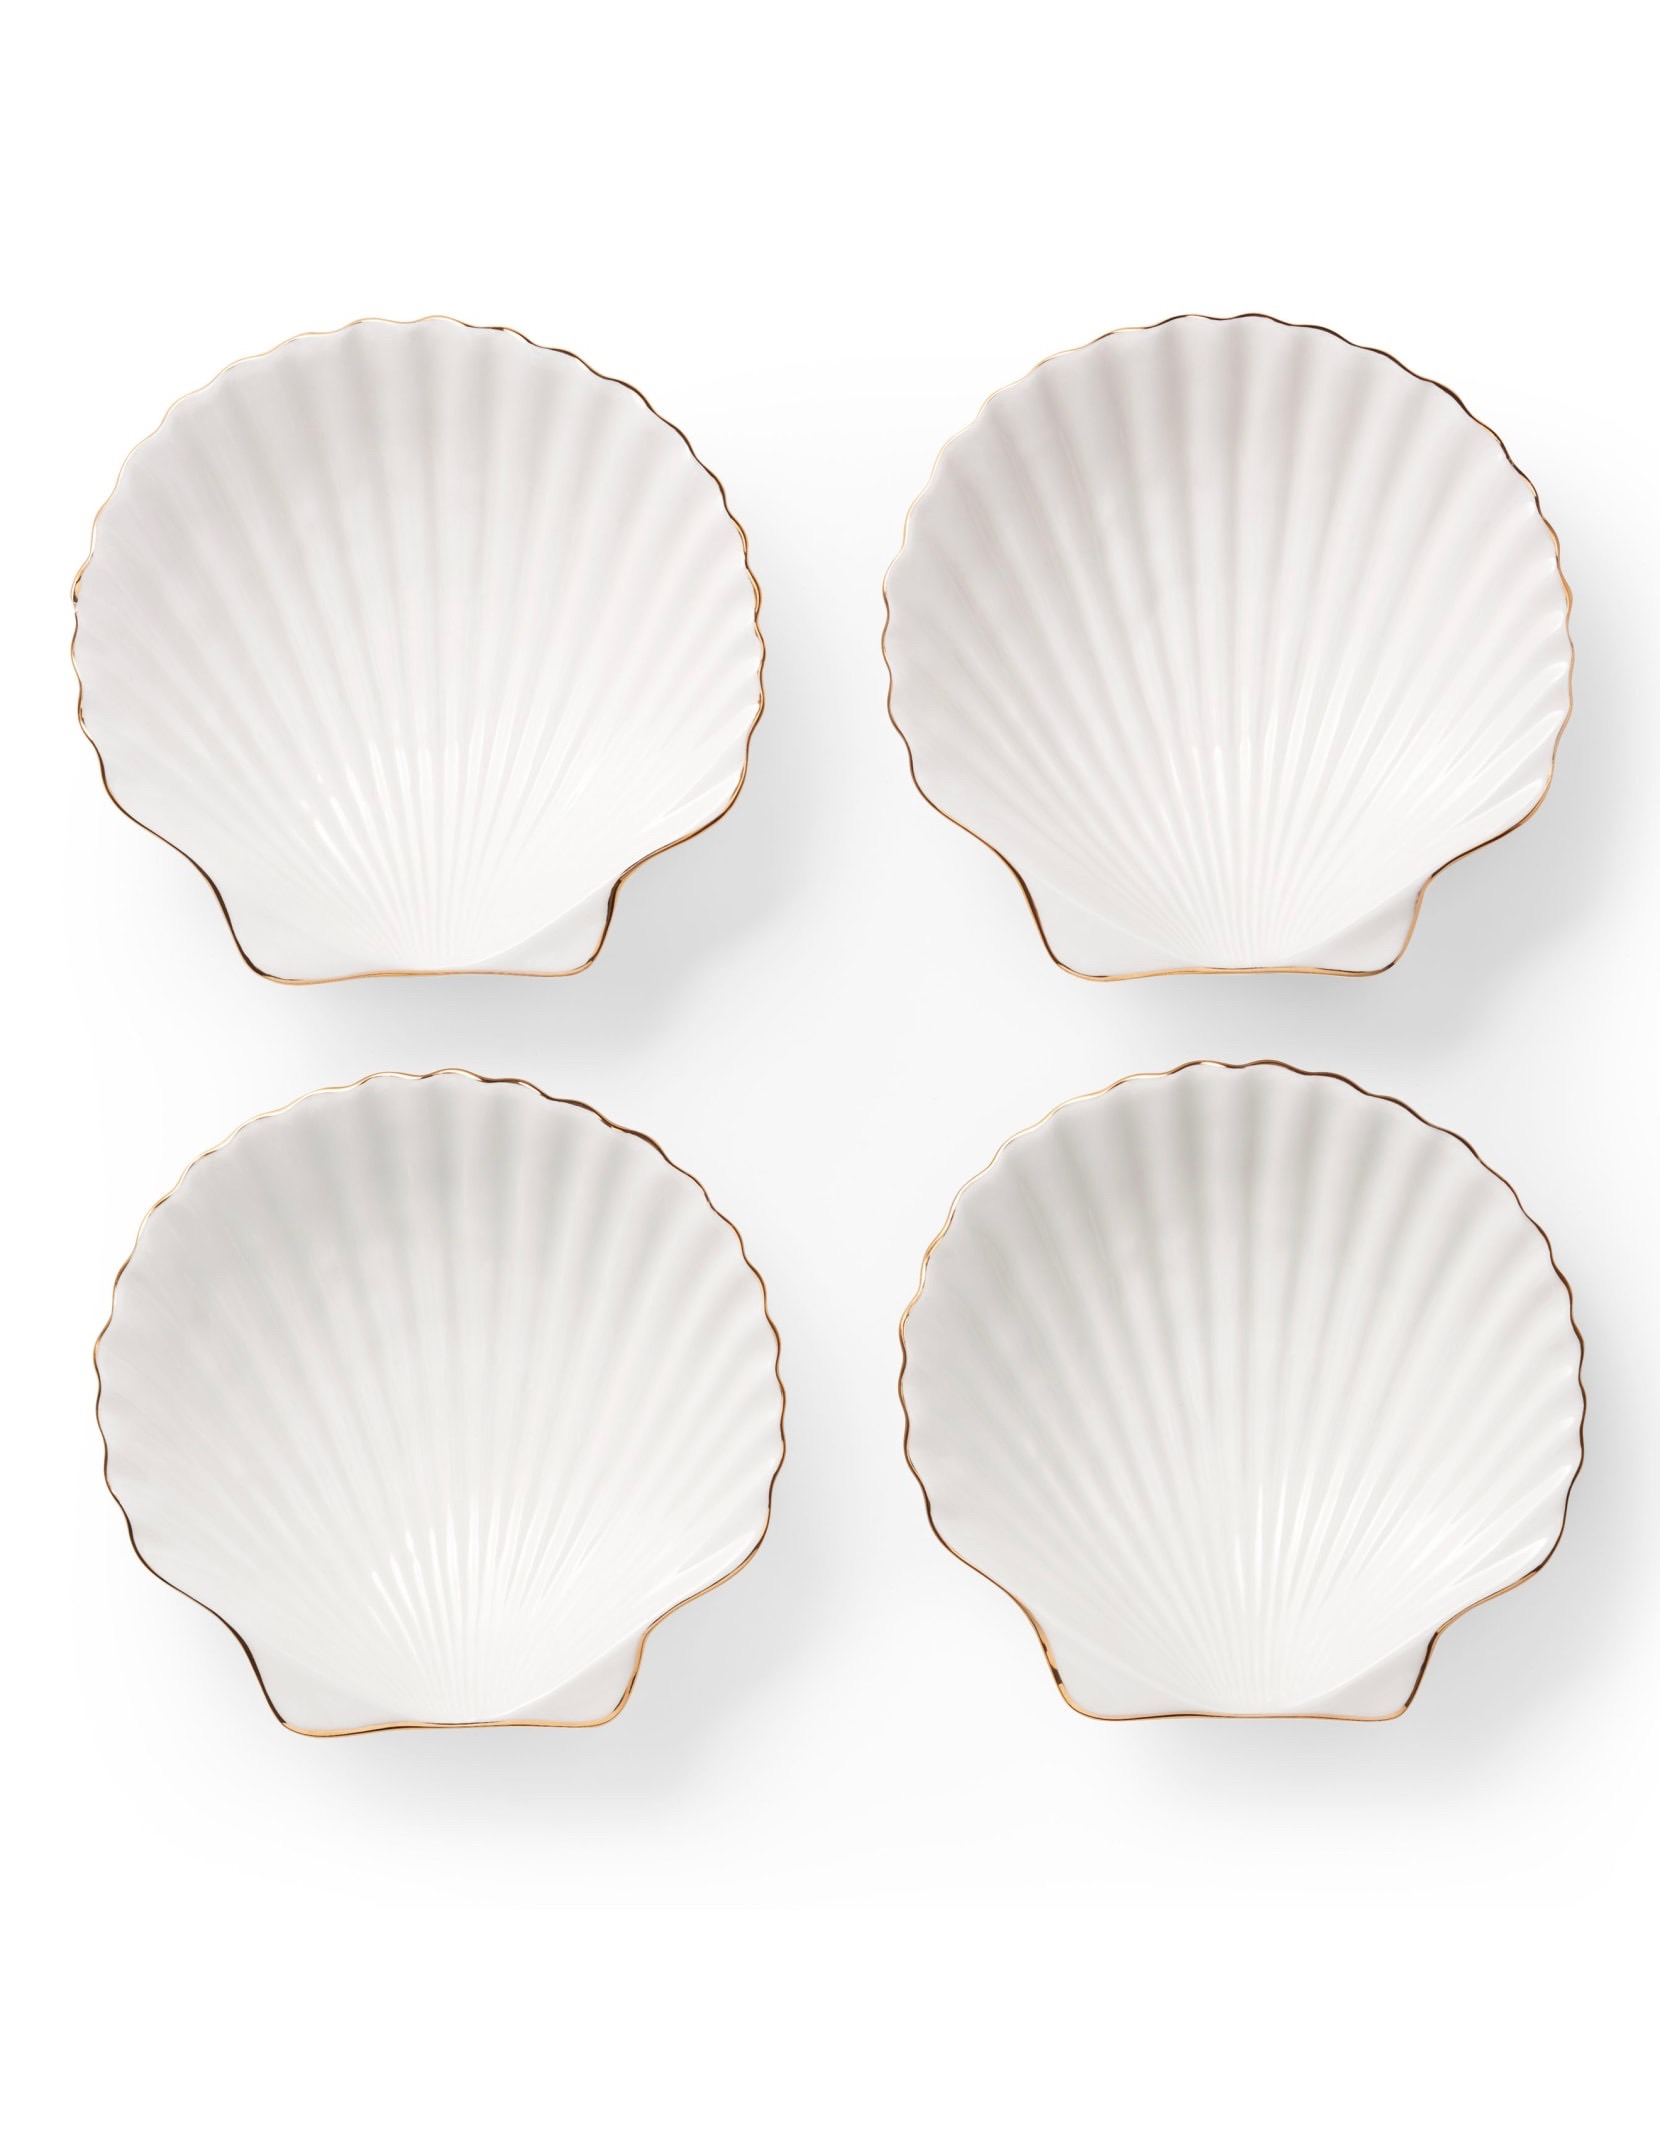 Shell Appetizer Plates with Gold Rim